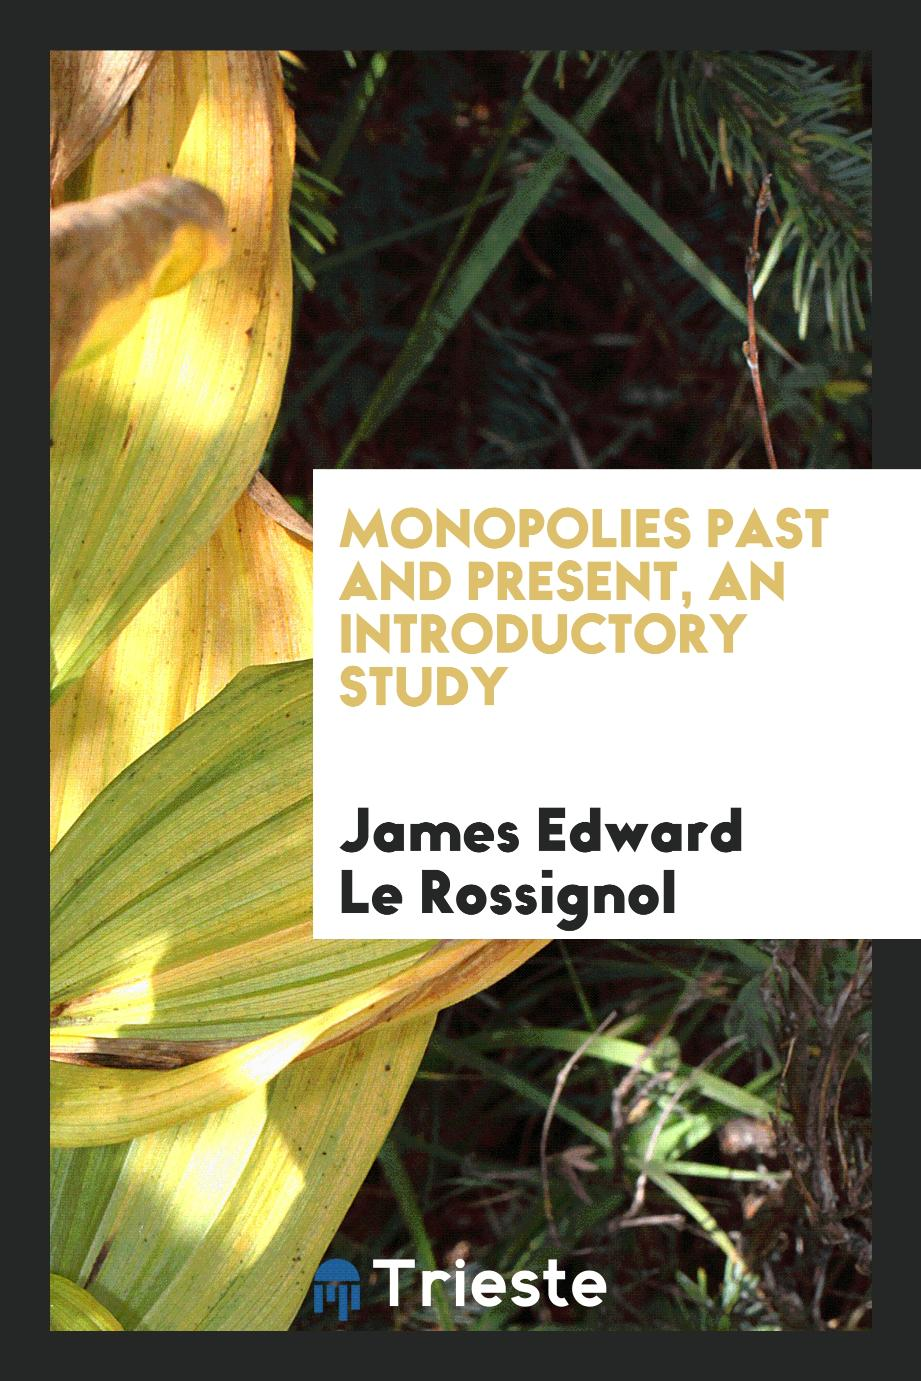 Monopolies past and present, an introductory study